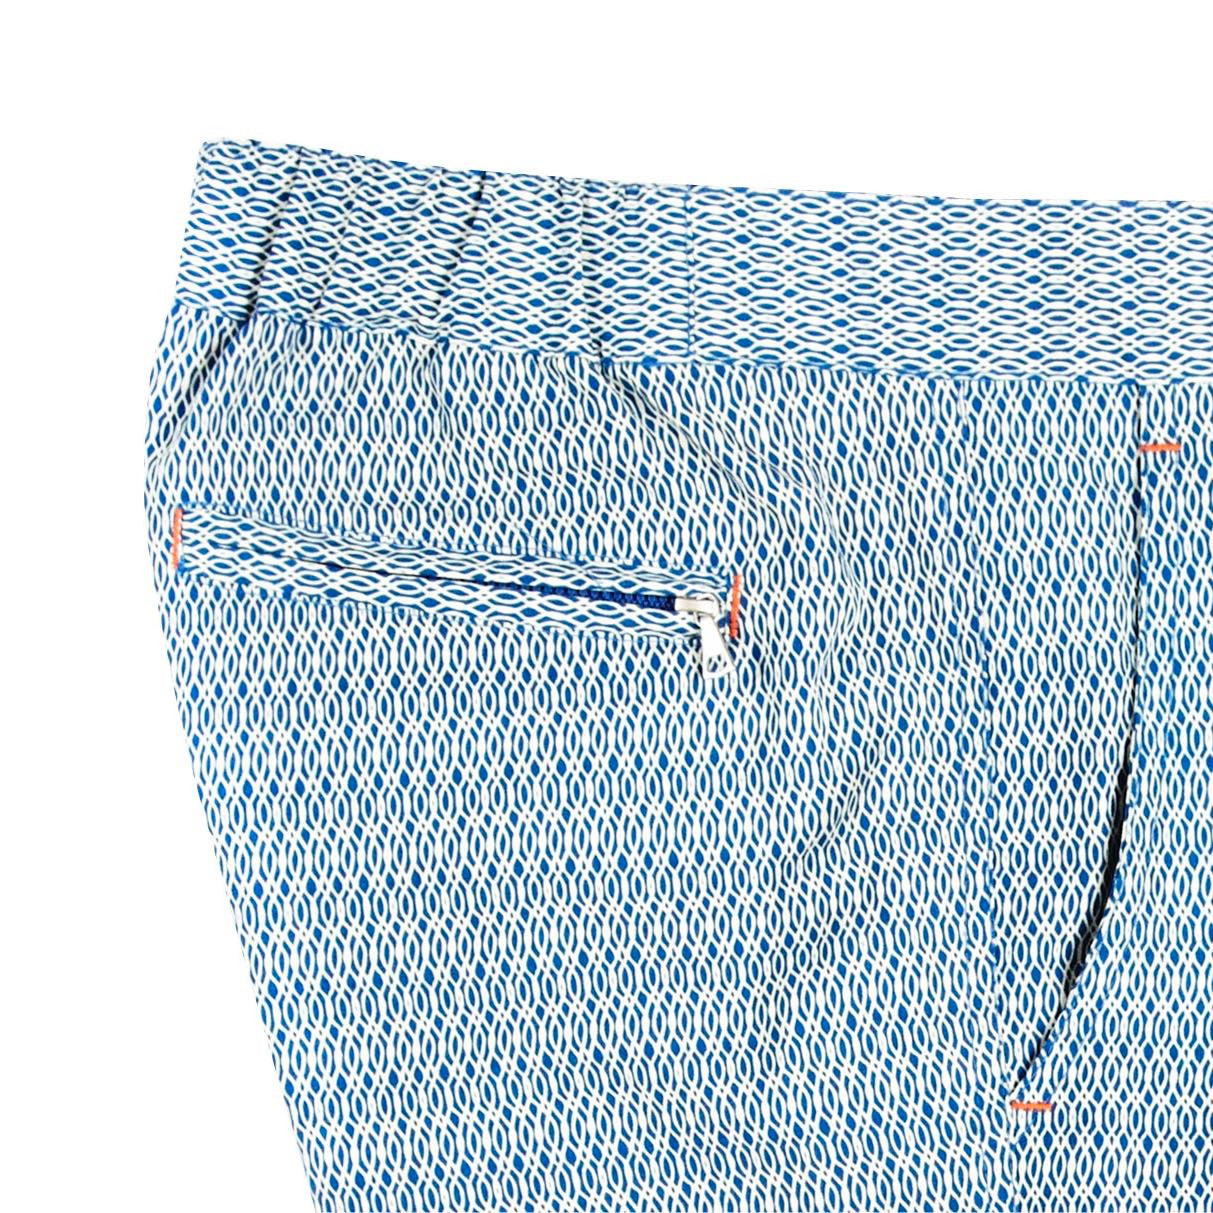 Indy Undertow Blue swim shorts detail